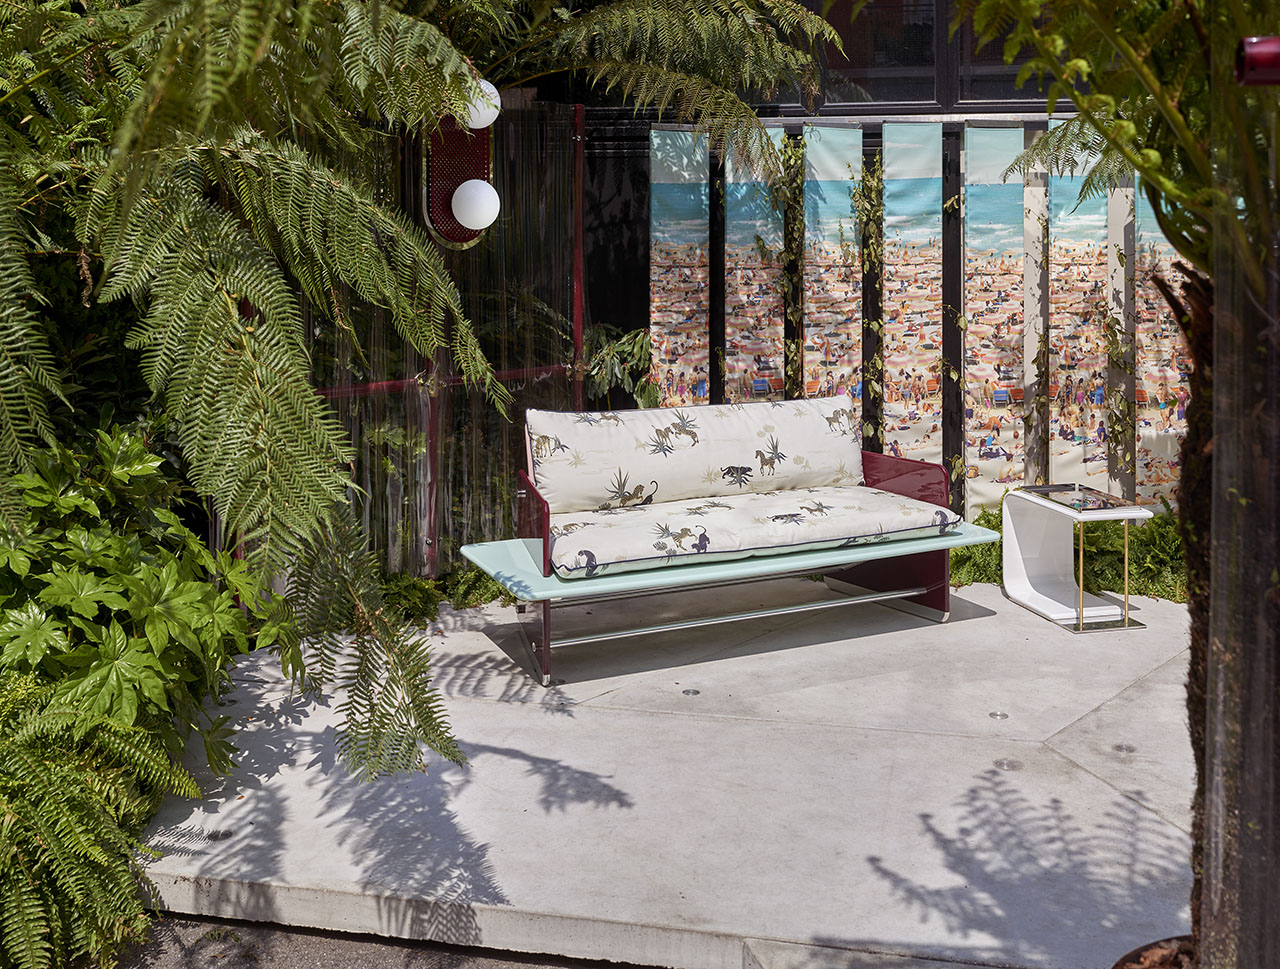 Supernova outdoor furniture series by Derek Castiglioni. Installation view at Nilufar Depot by Pim Top.